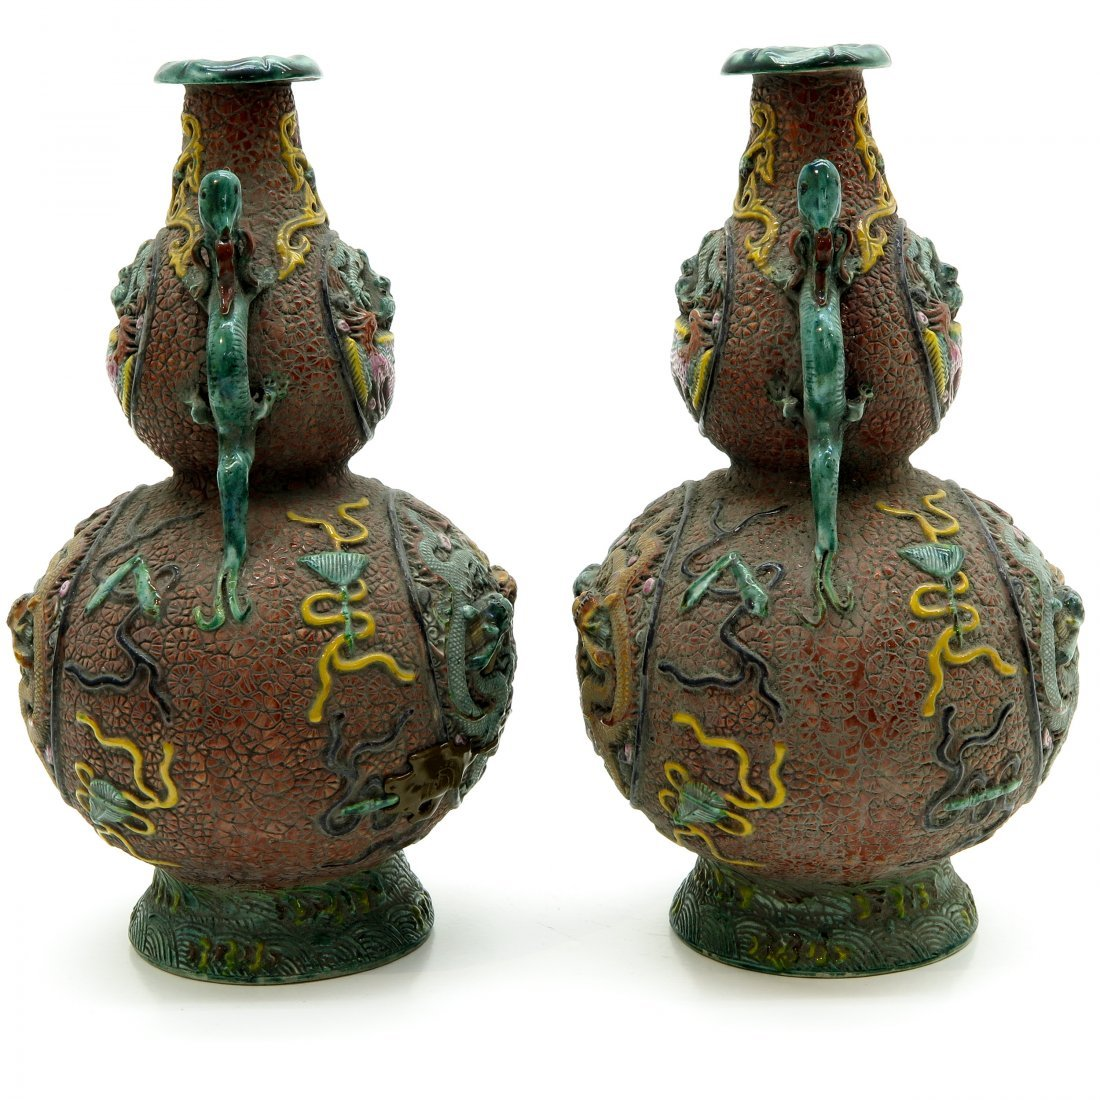 Lot of 19th Century China Porcelain Vases - 4